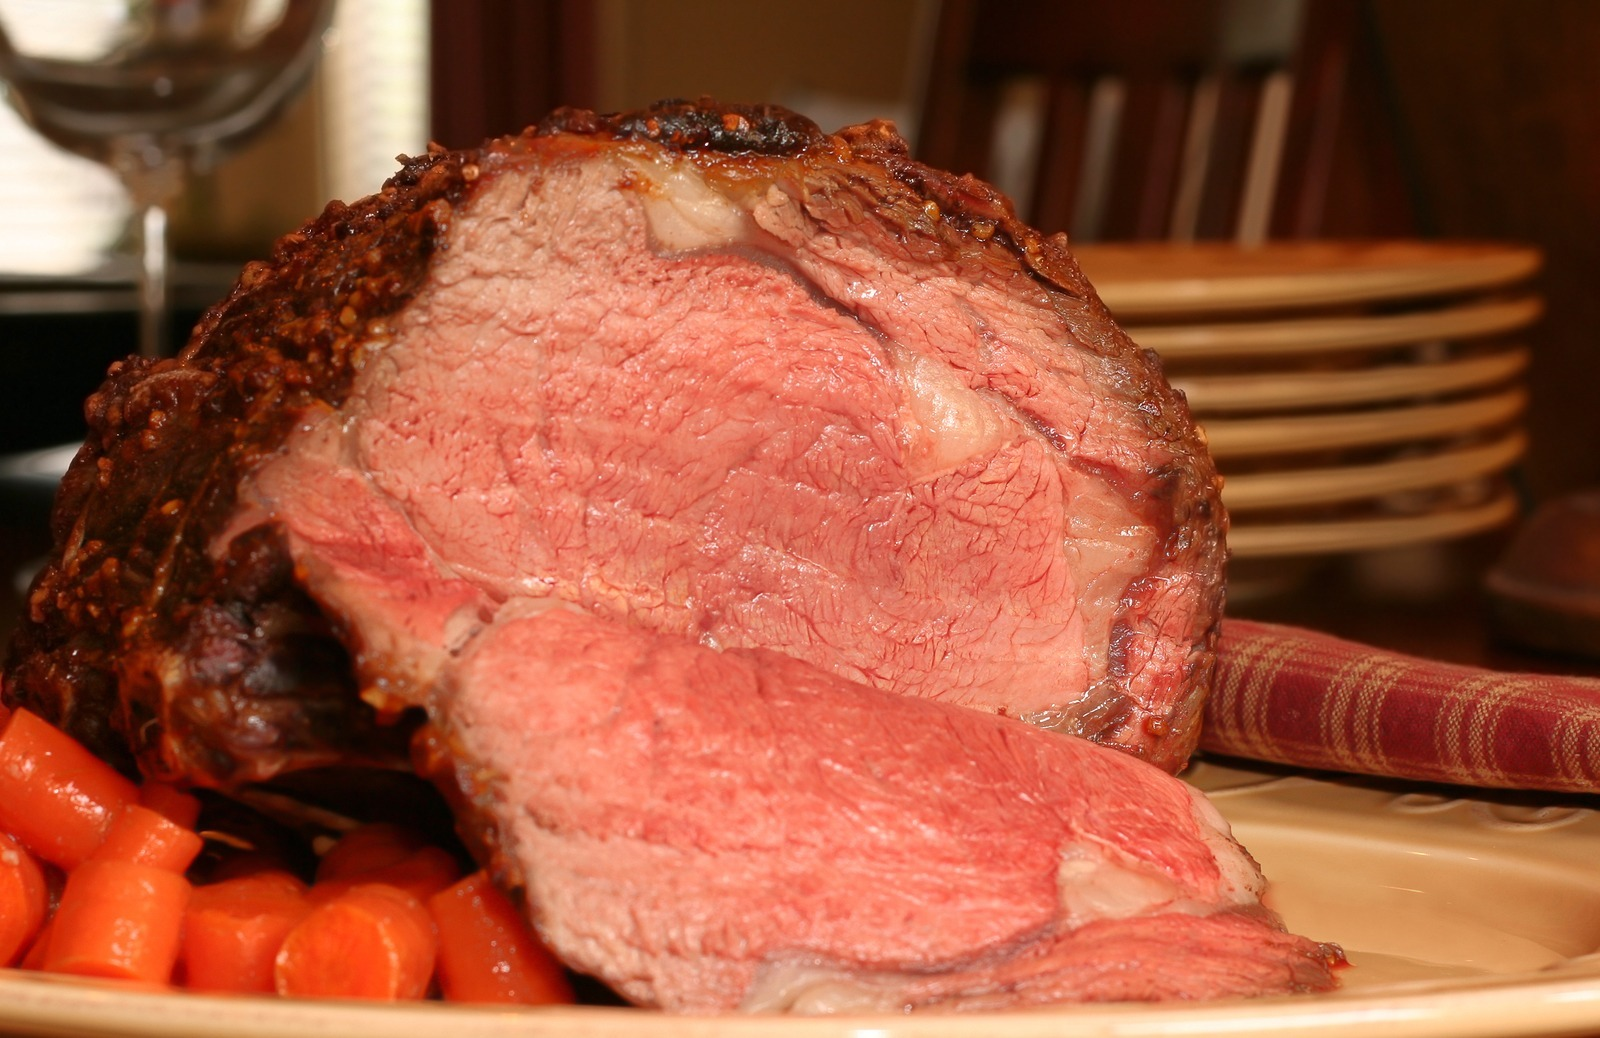 Prime rib roast, cooked medium rare and ready for serving.